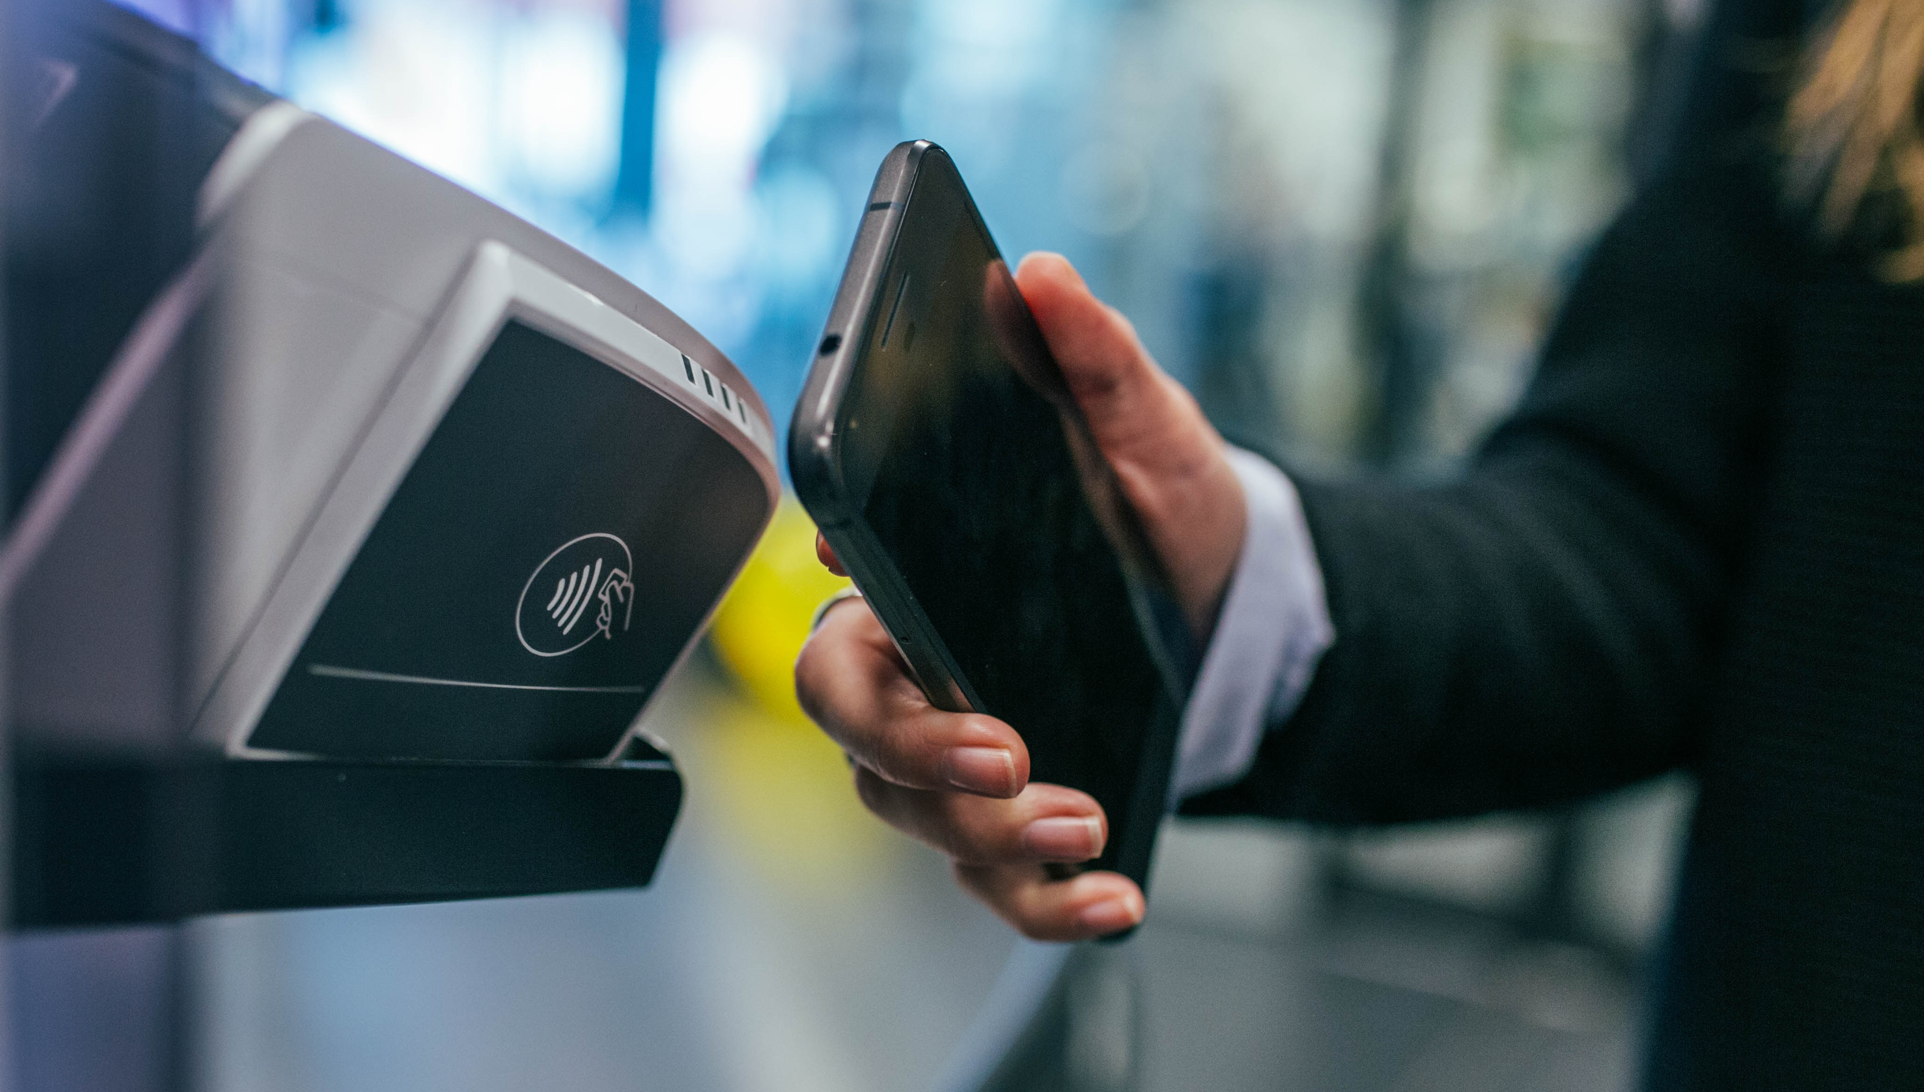 A lot of experts predict that paying cashless with your mobile device only will be the future in retail